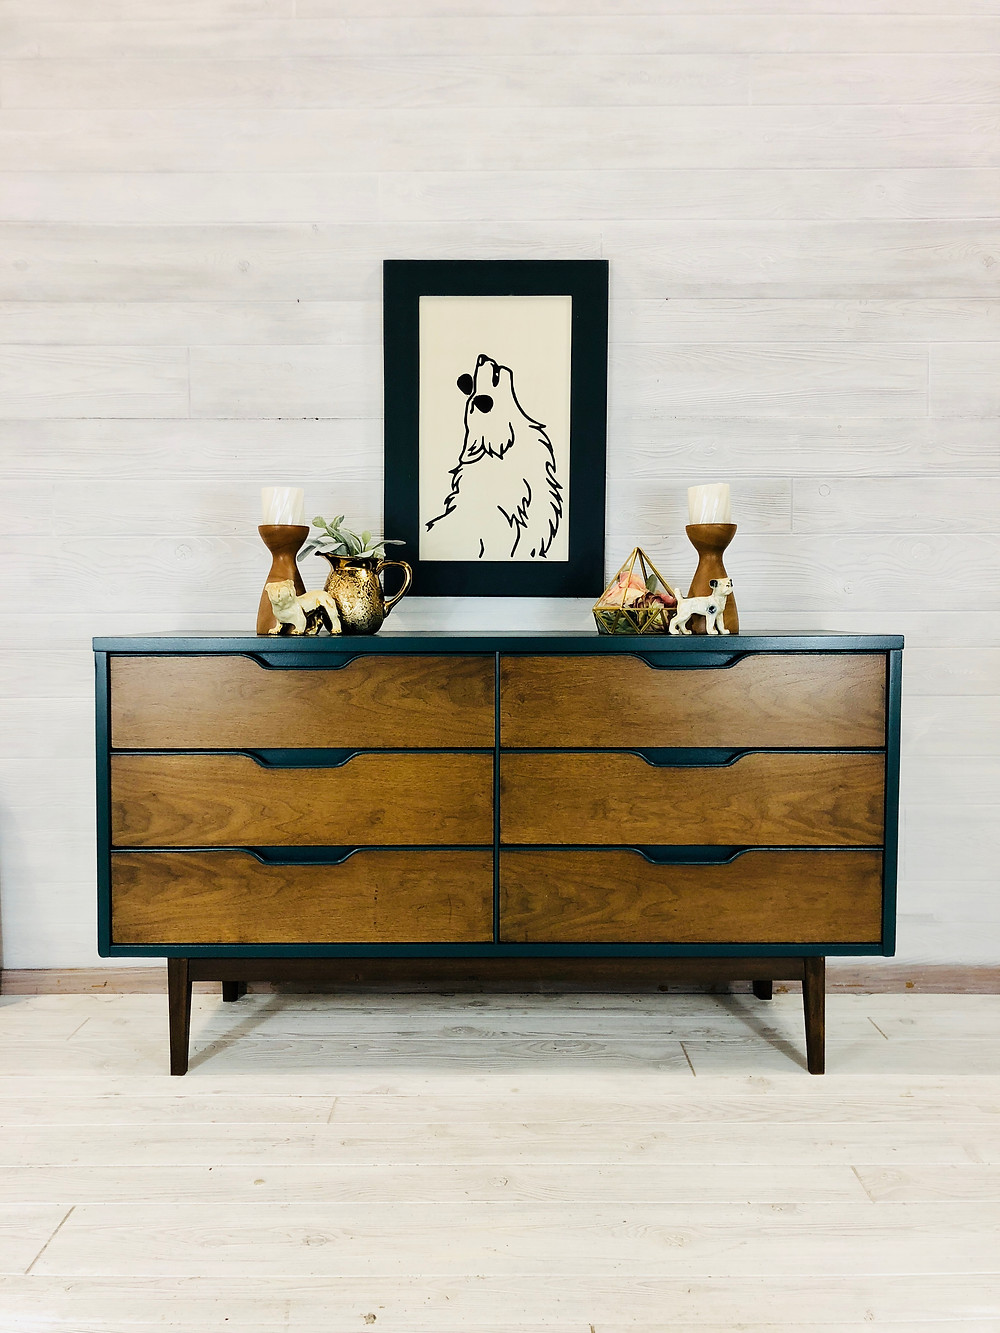 Teal and Wood MCM Dresser